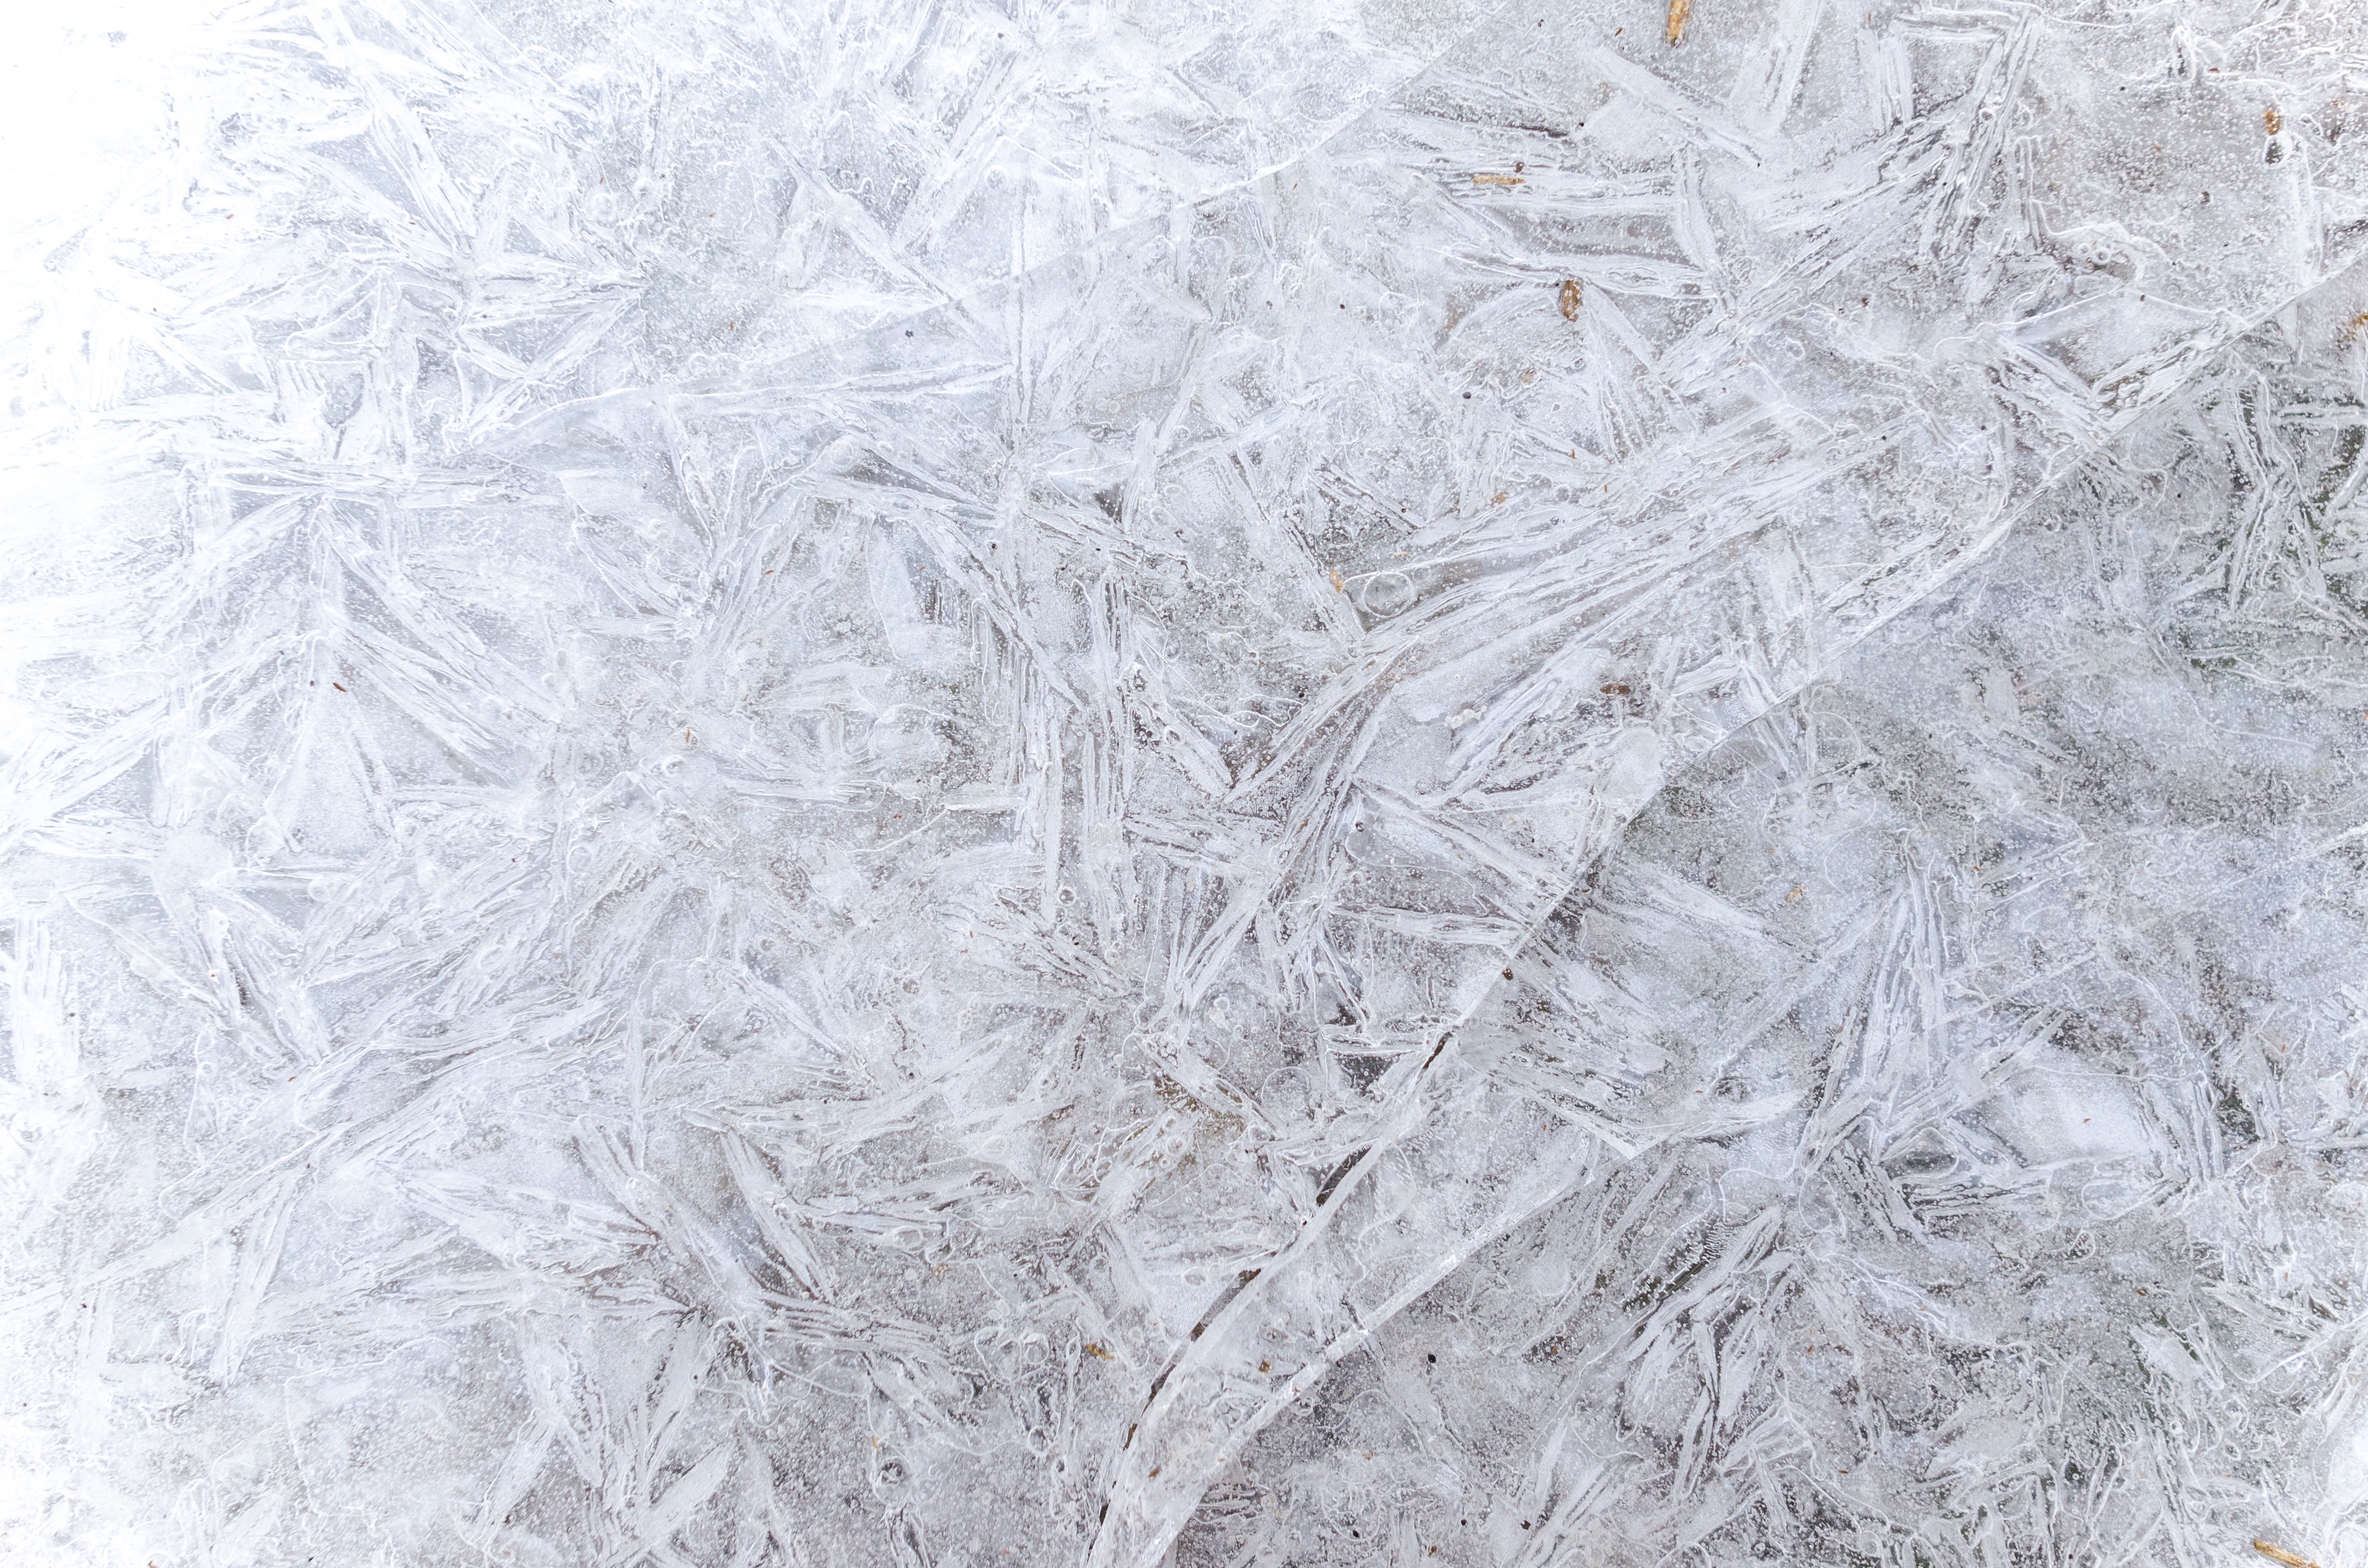 Ice abstract texture in winter, Structure, Icy, Natural, Nature, HQ Photo